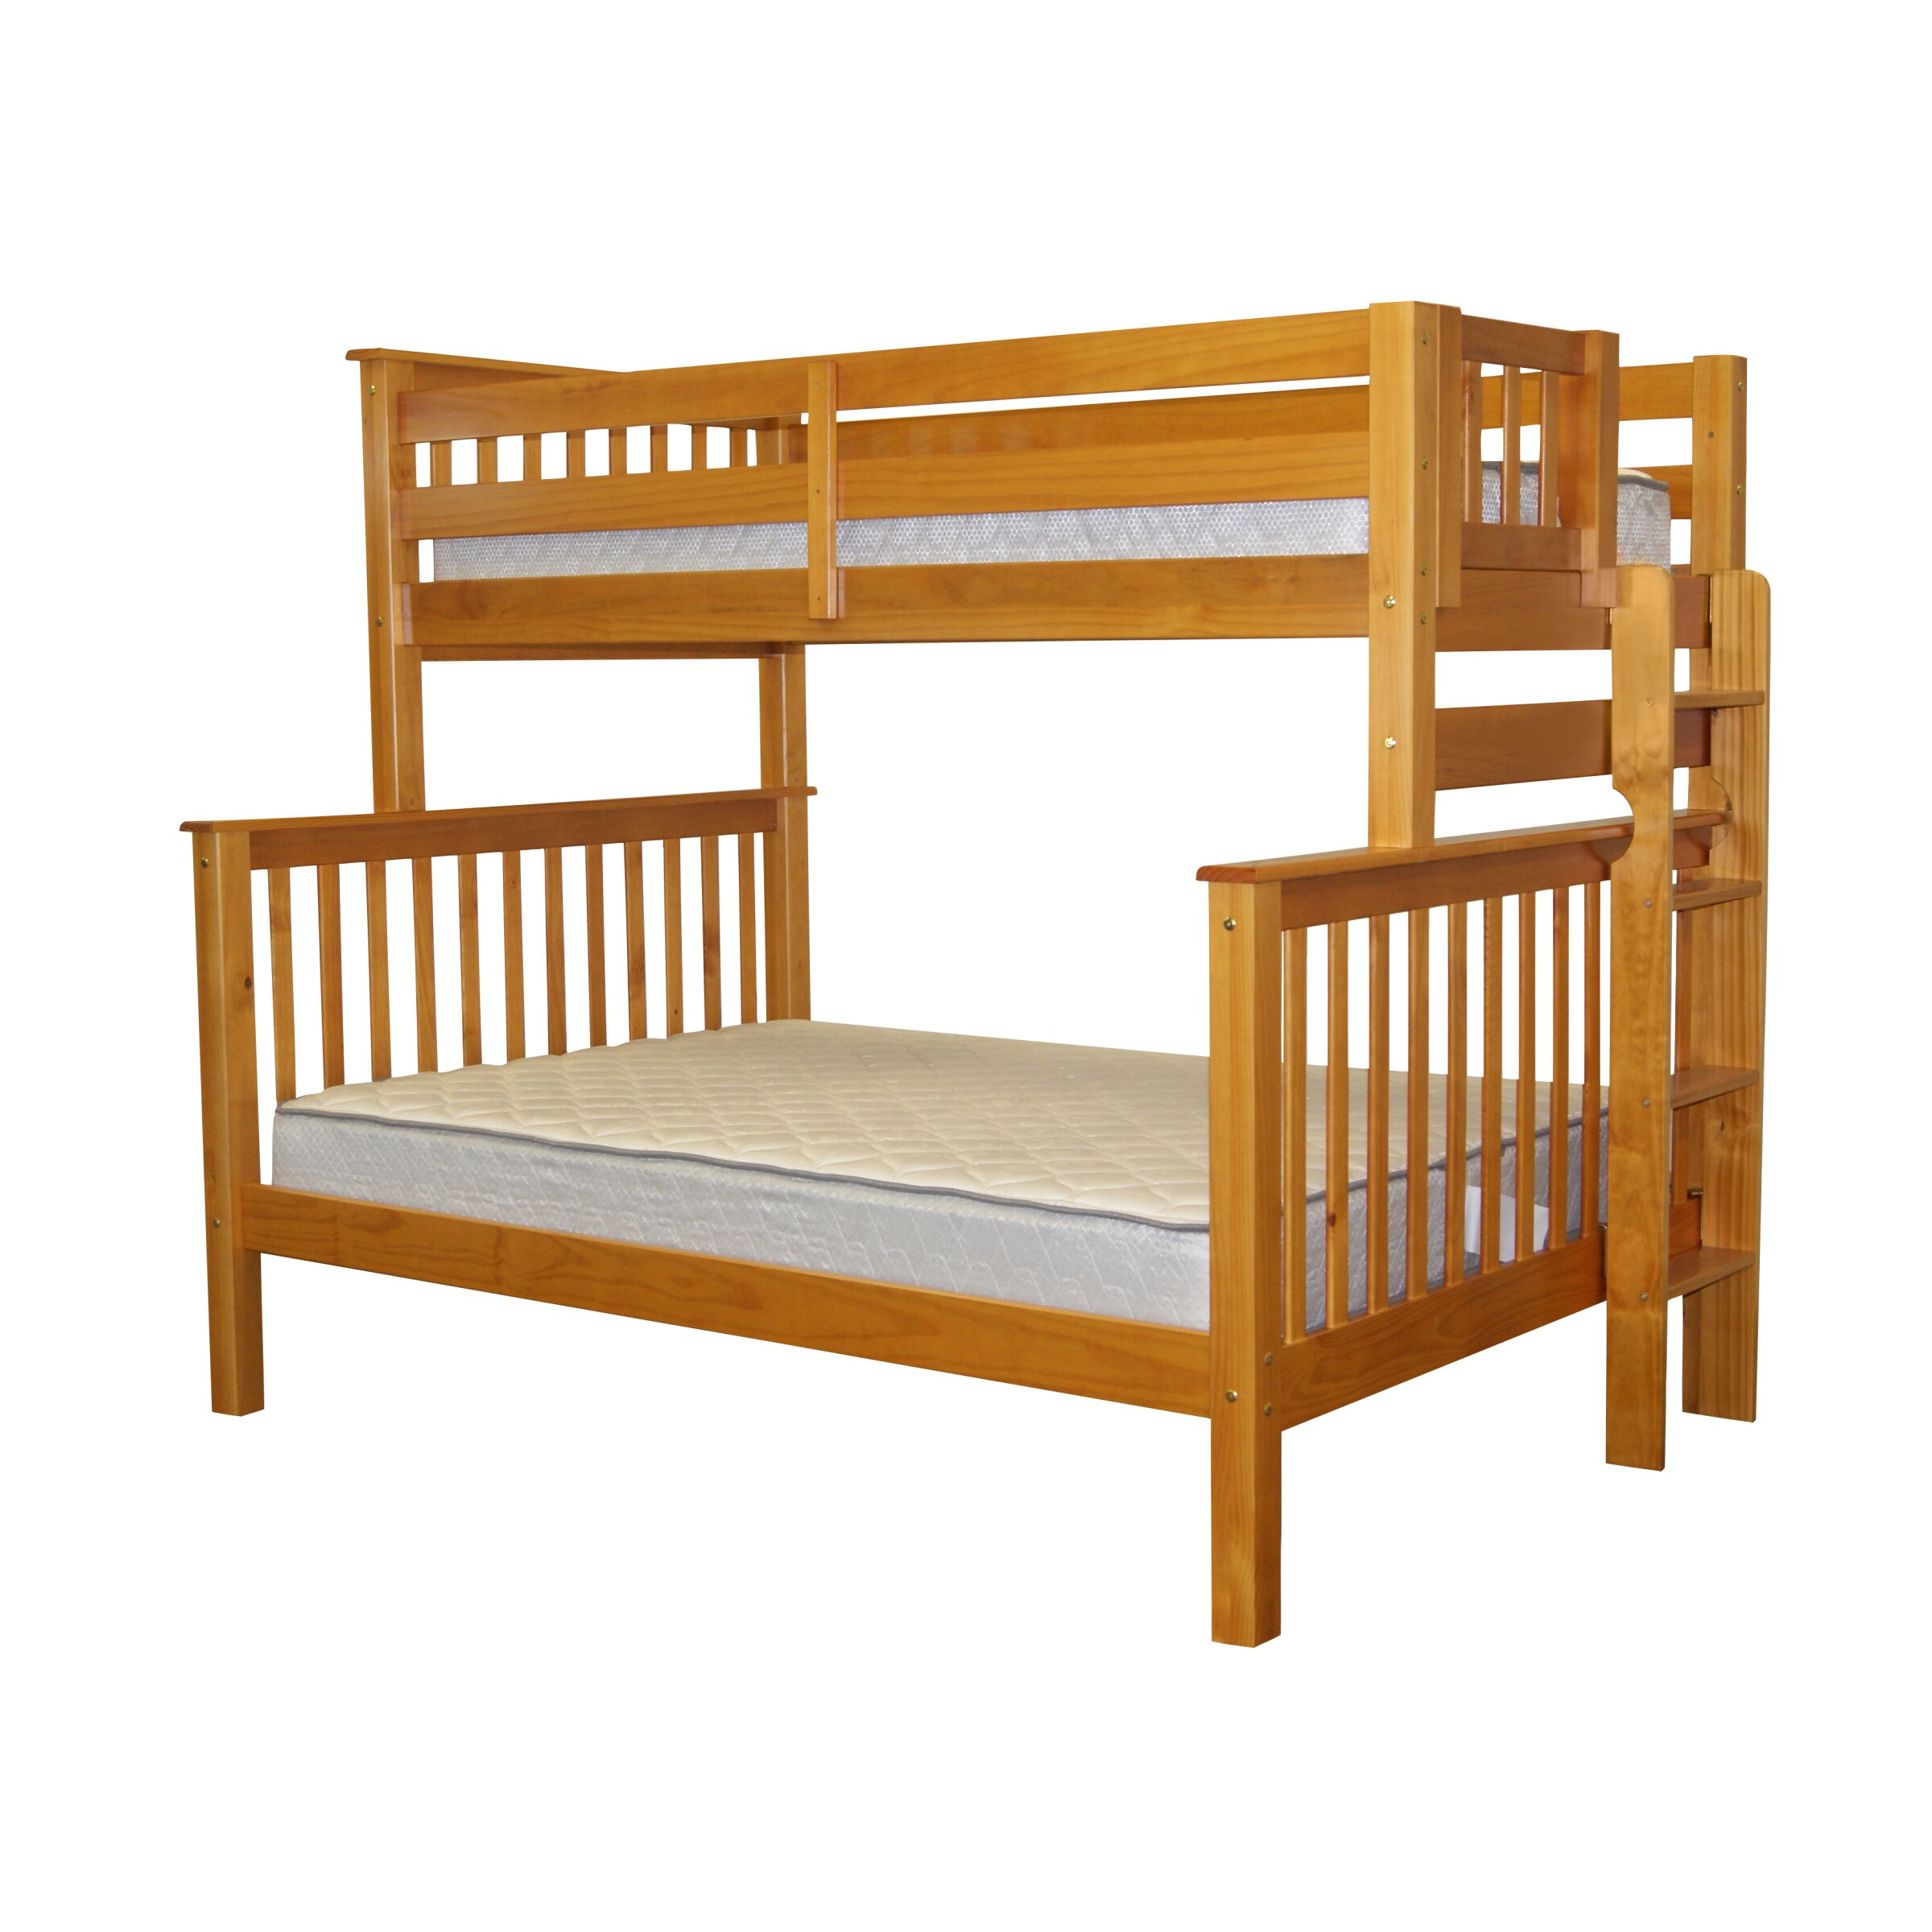 Bedz king mission twin over full bunk bed with trundle for Beds with trundle